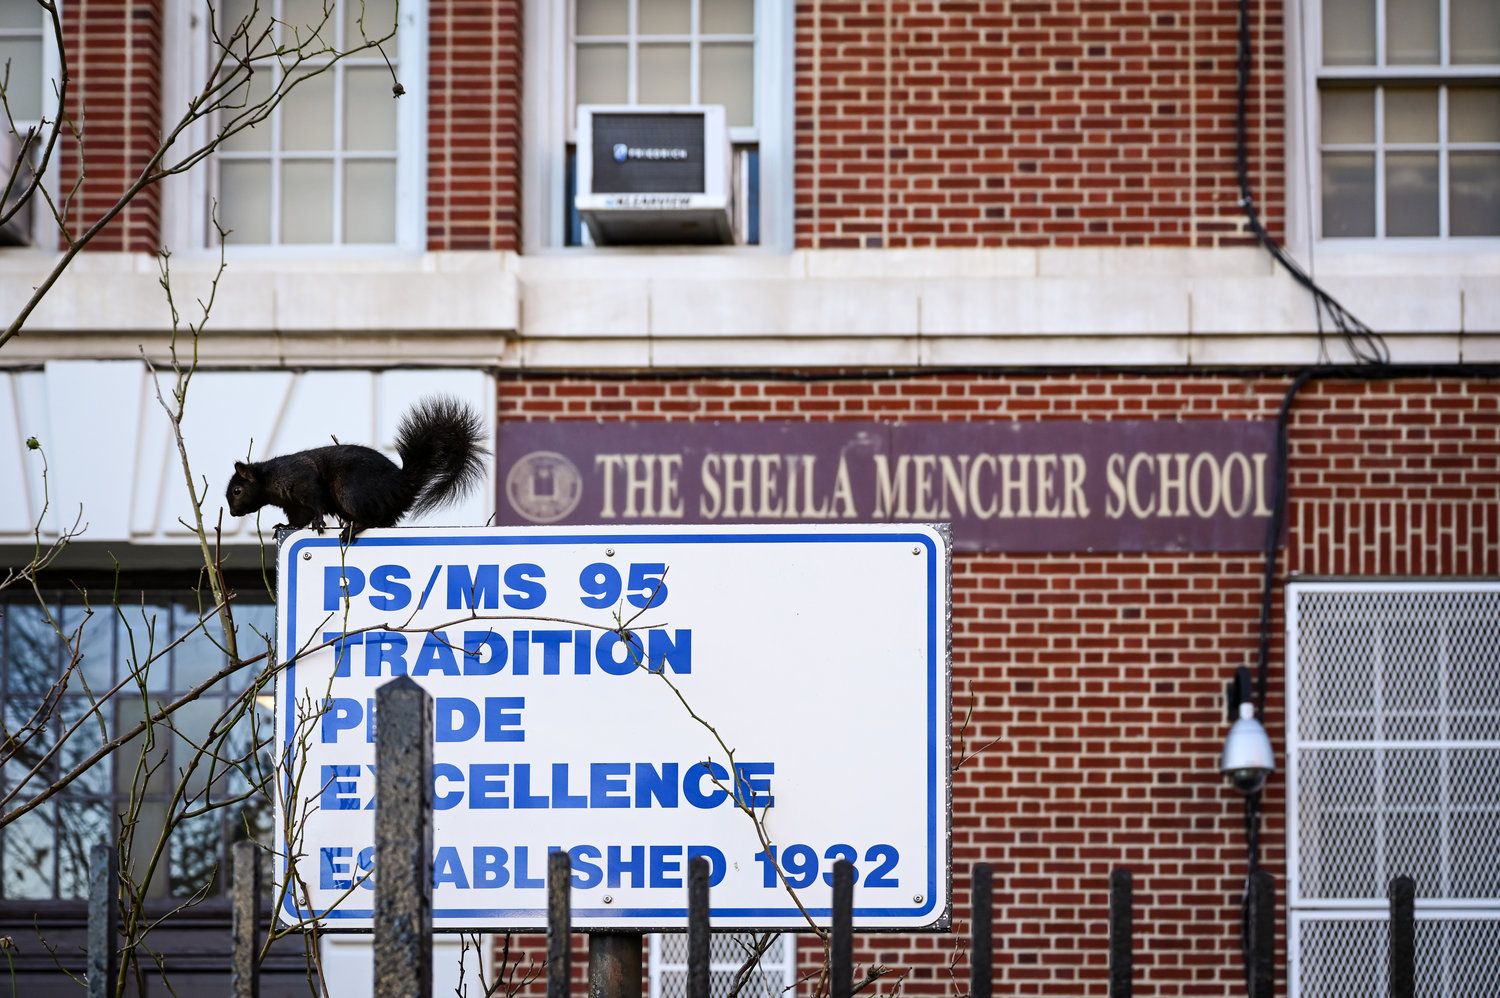 While public schools across the city closed their buildings last week — owing to the city's weekly positive testing rate — some schools in the area, like P.S. 24 Spuyten Duyvil and P.S. 95 Sheila Mencher, already had been subjected to 14-day closures due to multiple coronavirus cases on campus.